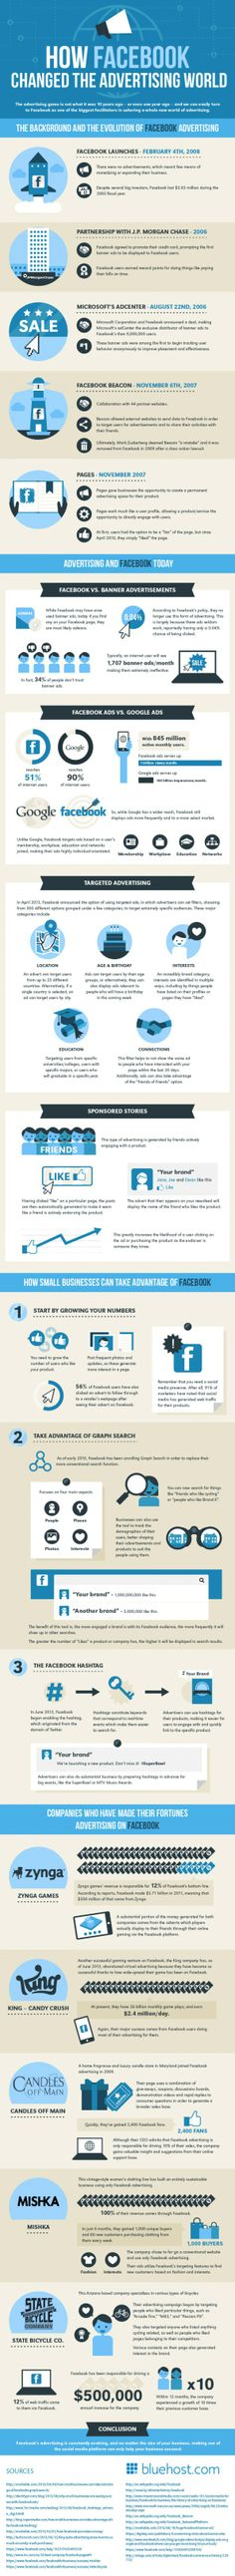 how-facebook-changed-the-advertising-world_5296791fe18f2_w1500.png